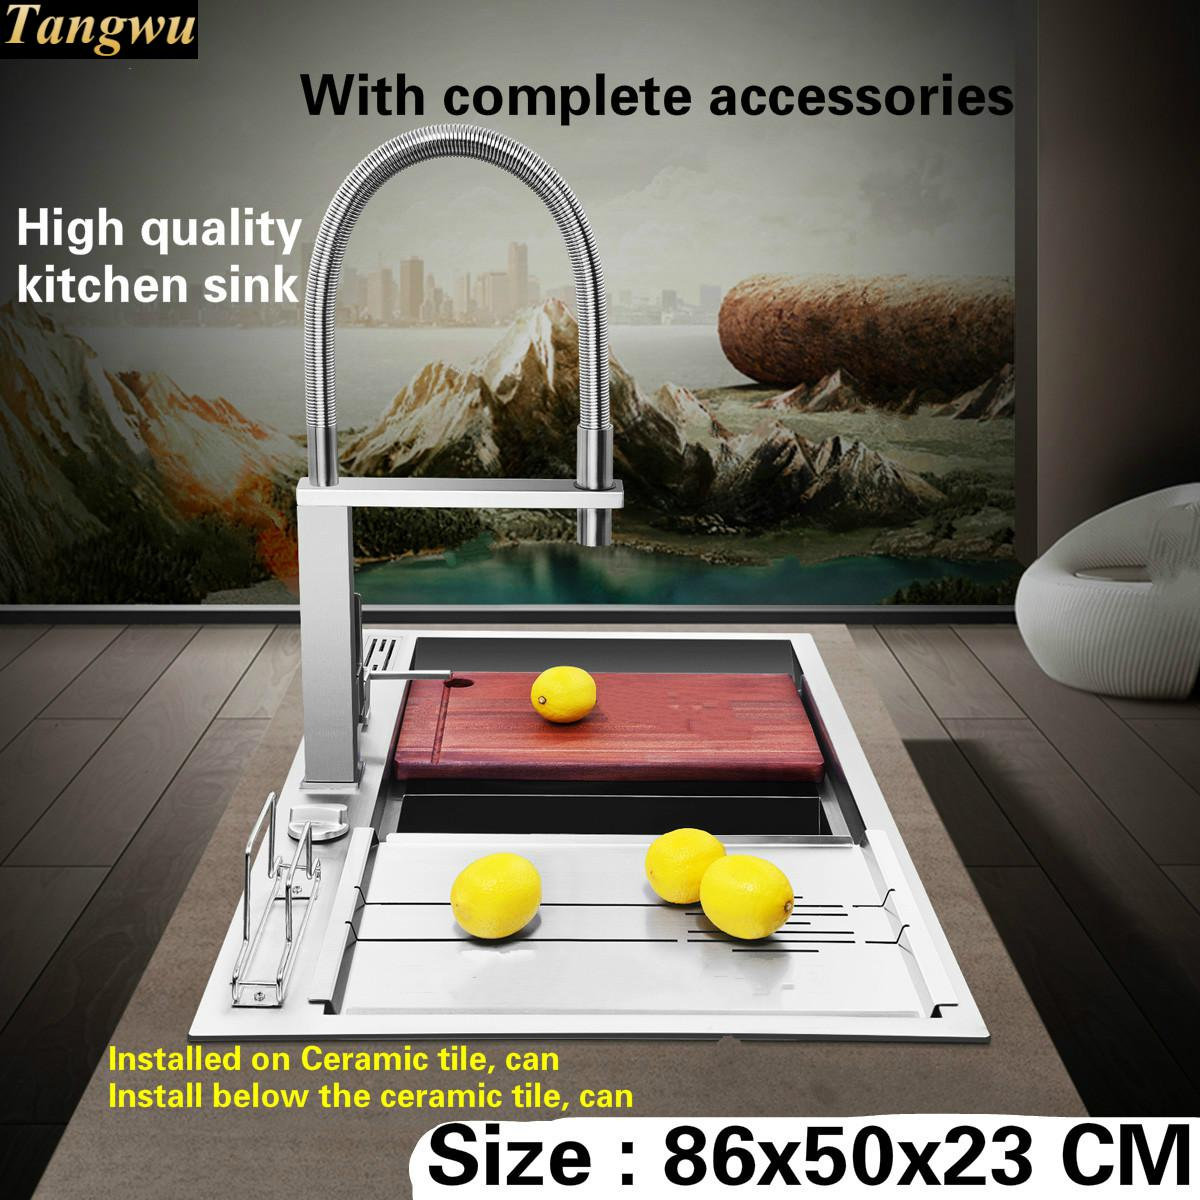 Tangwu Luxurious and high-grade kitchen sink button drainage 4 mm thick food grade stainless steel double groove big 86x50x23 CM free shipping food grade 304 stainless steel hot sell kitchen sink double trough 0 8 mm thick ordinary 78x43 cm